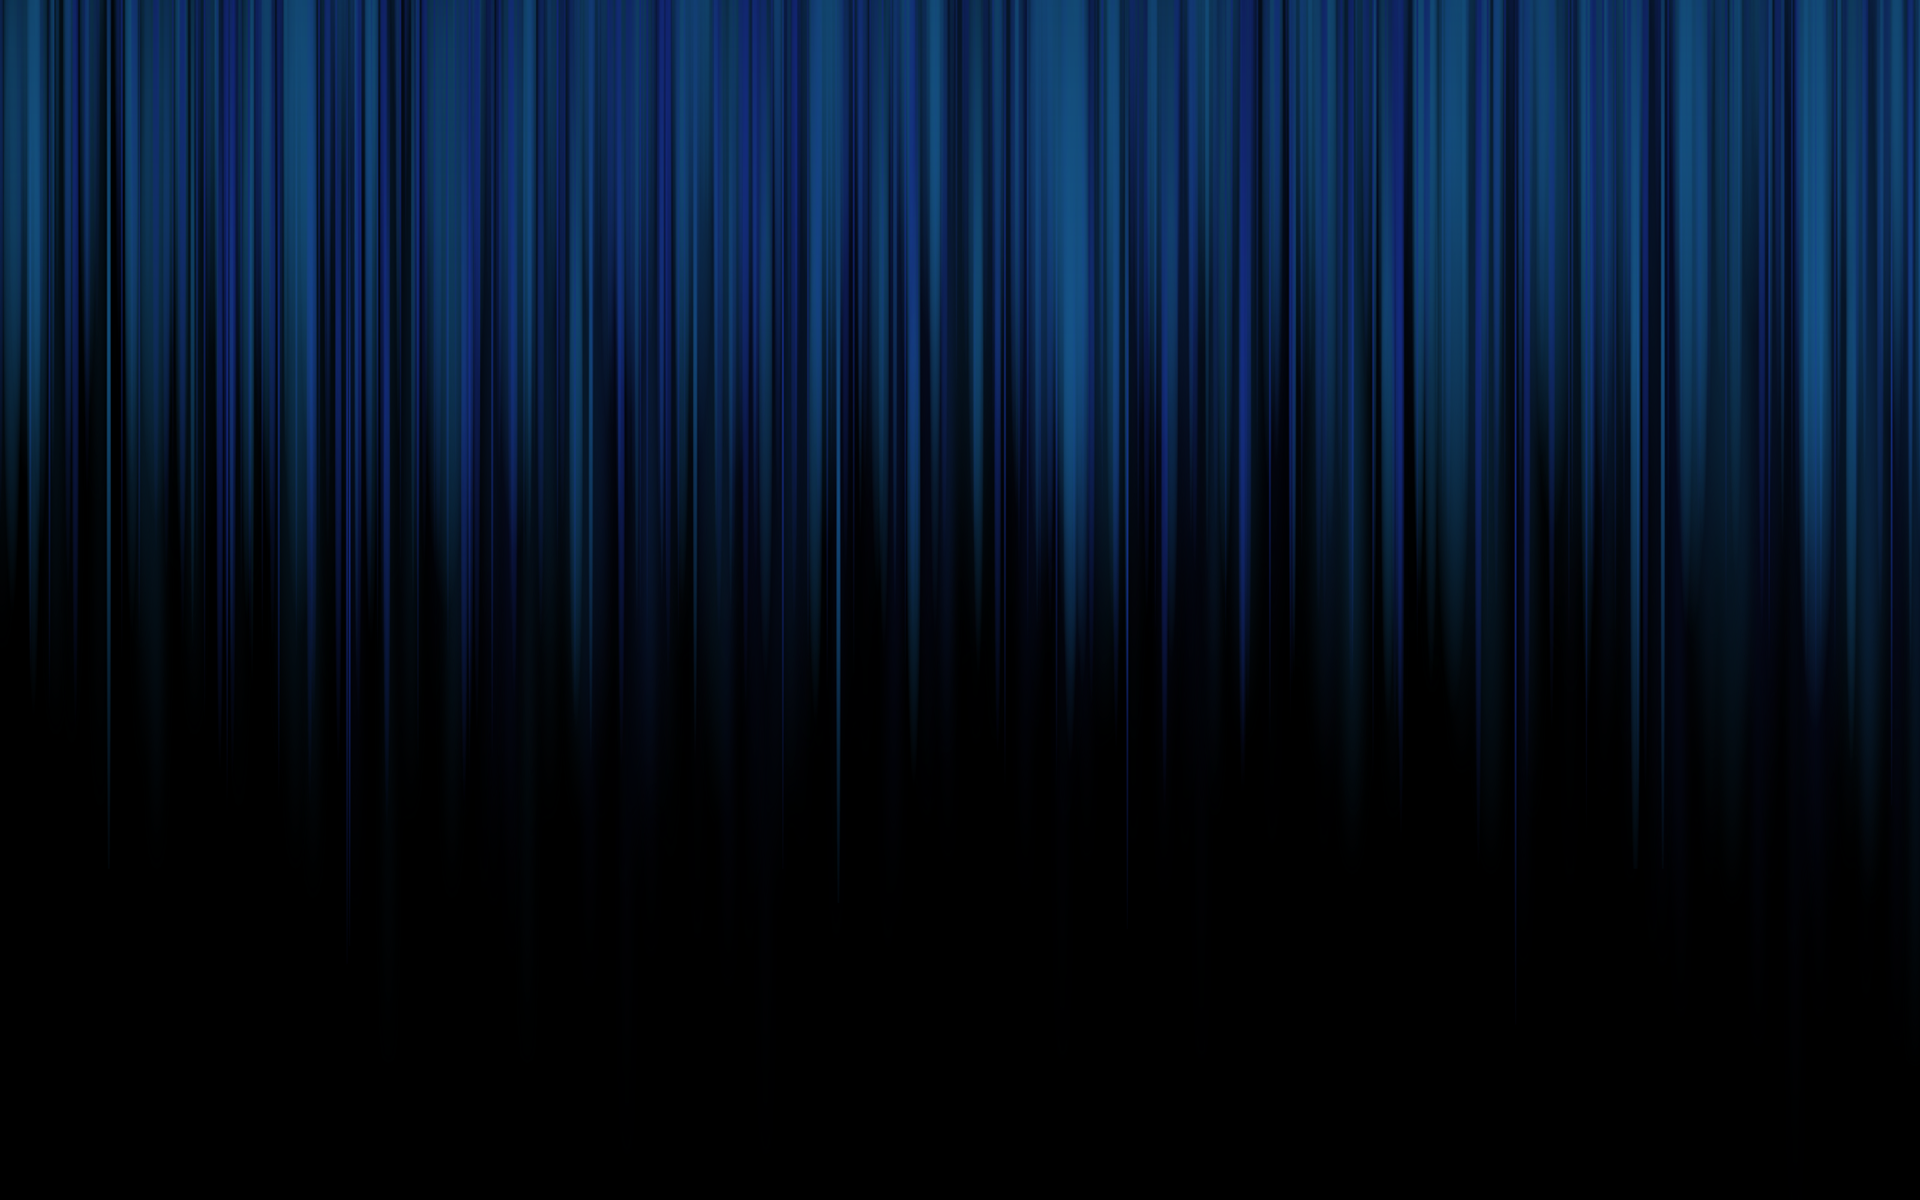 Midnight Blue Backgrounds 1920x1200